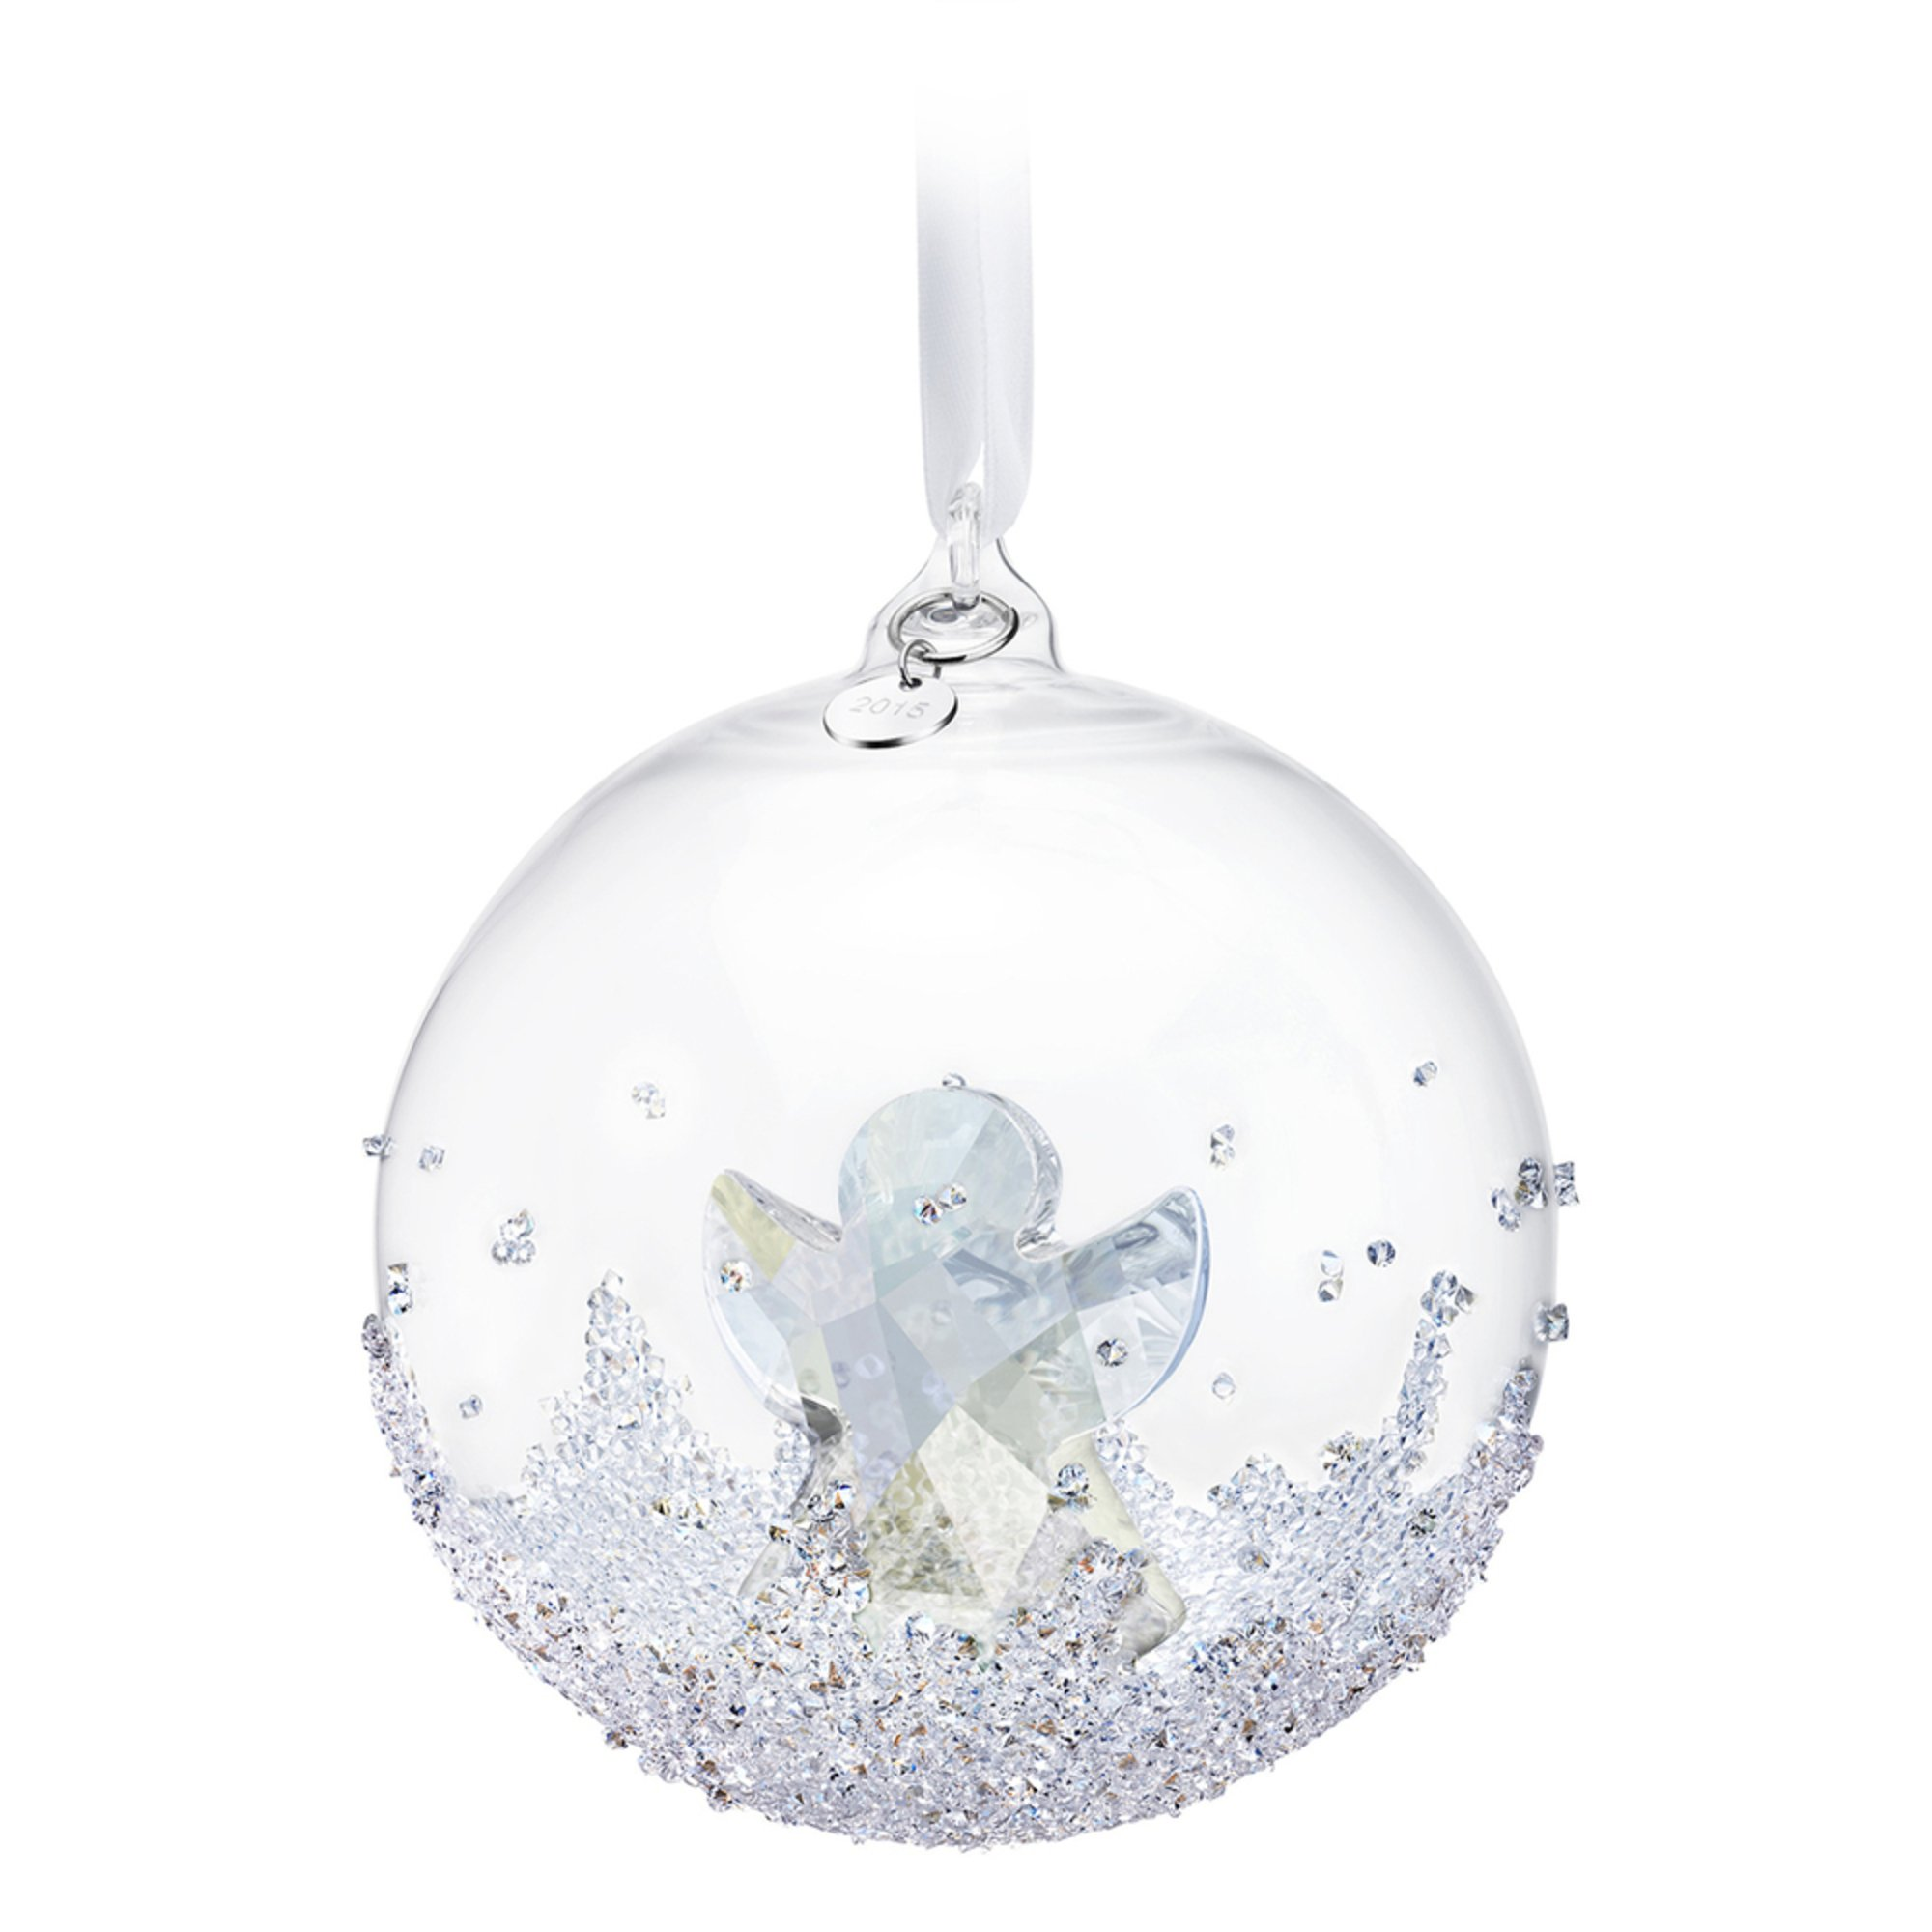 Swarovski christmas ball ornament a e 2015 ornaments for Christmas ornaments clearance